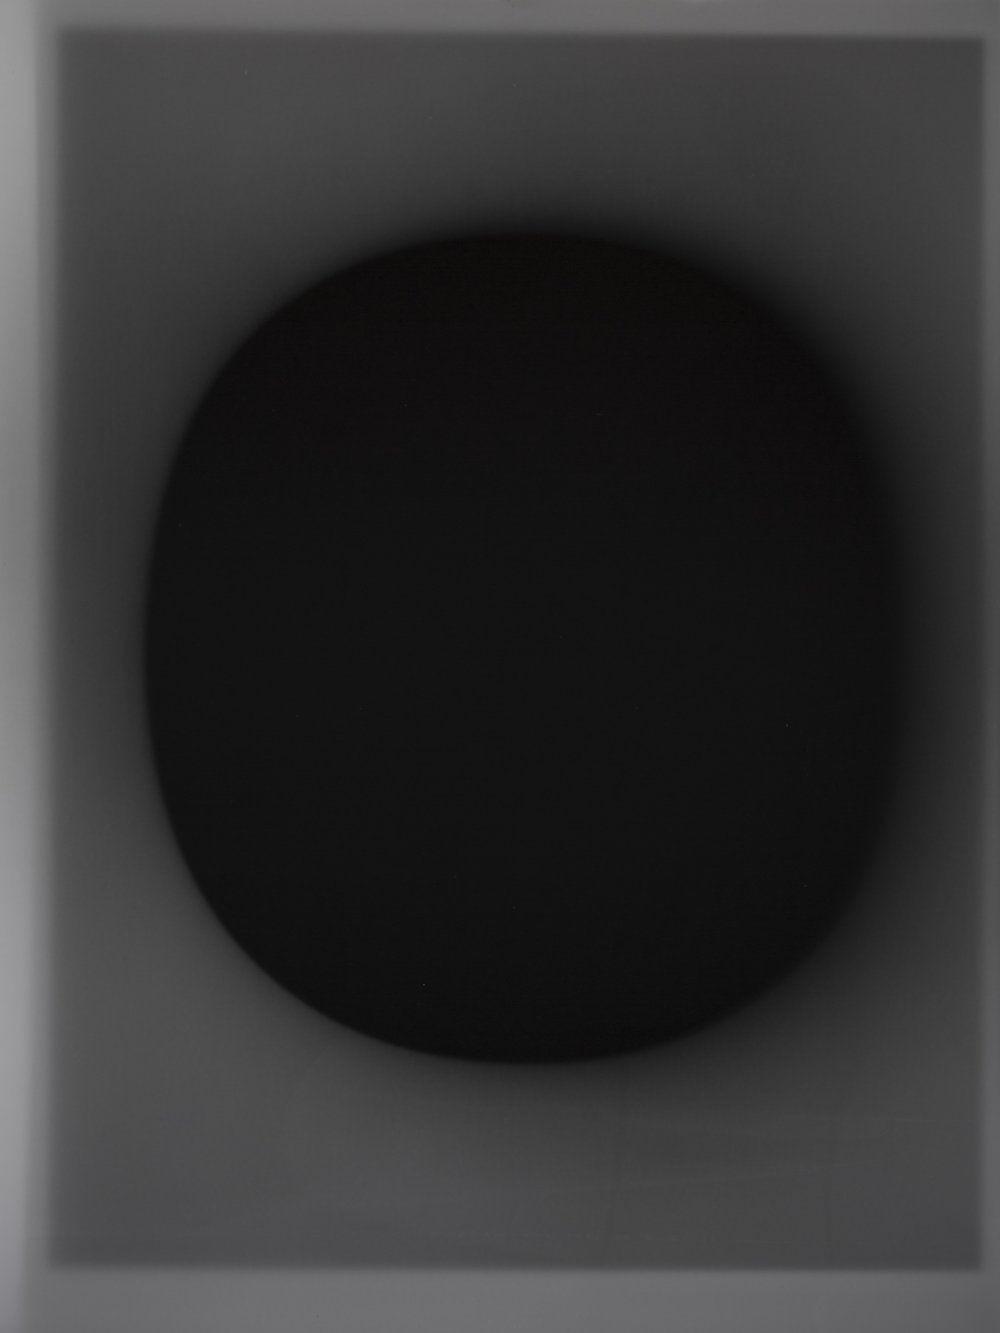 """My first luminogram exposed by the image displayed on the computer screen. Gelatine silver print, 16""""x12""""."""